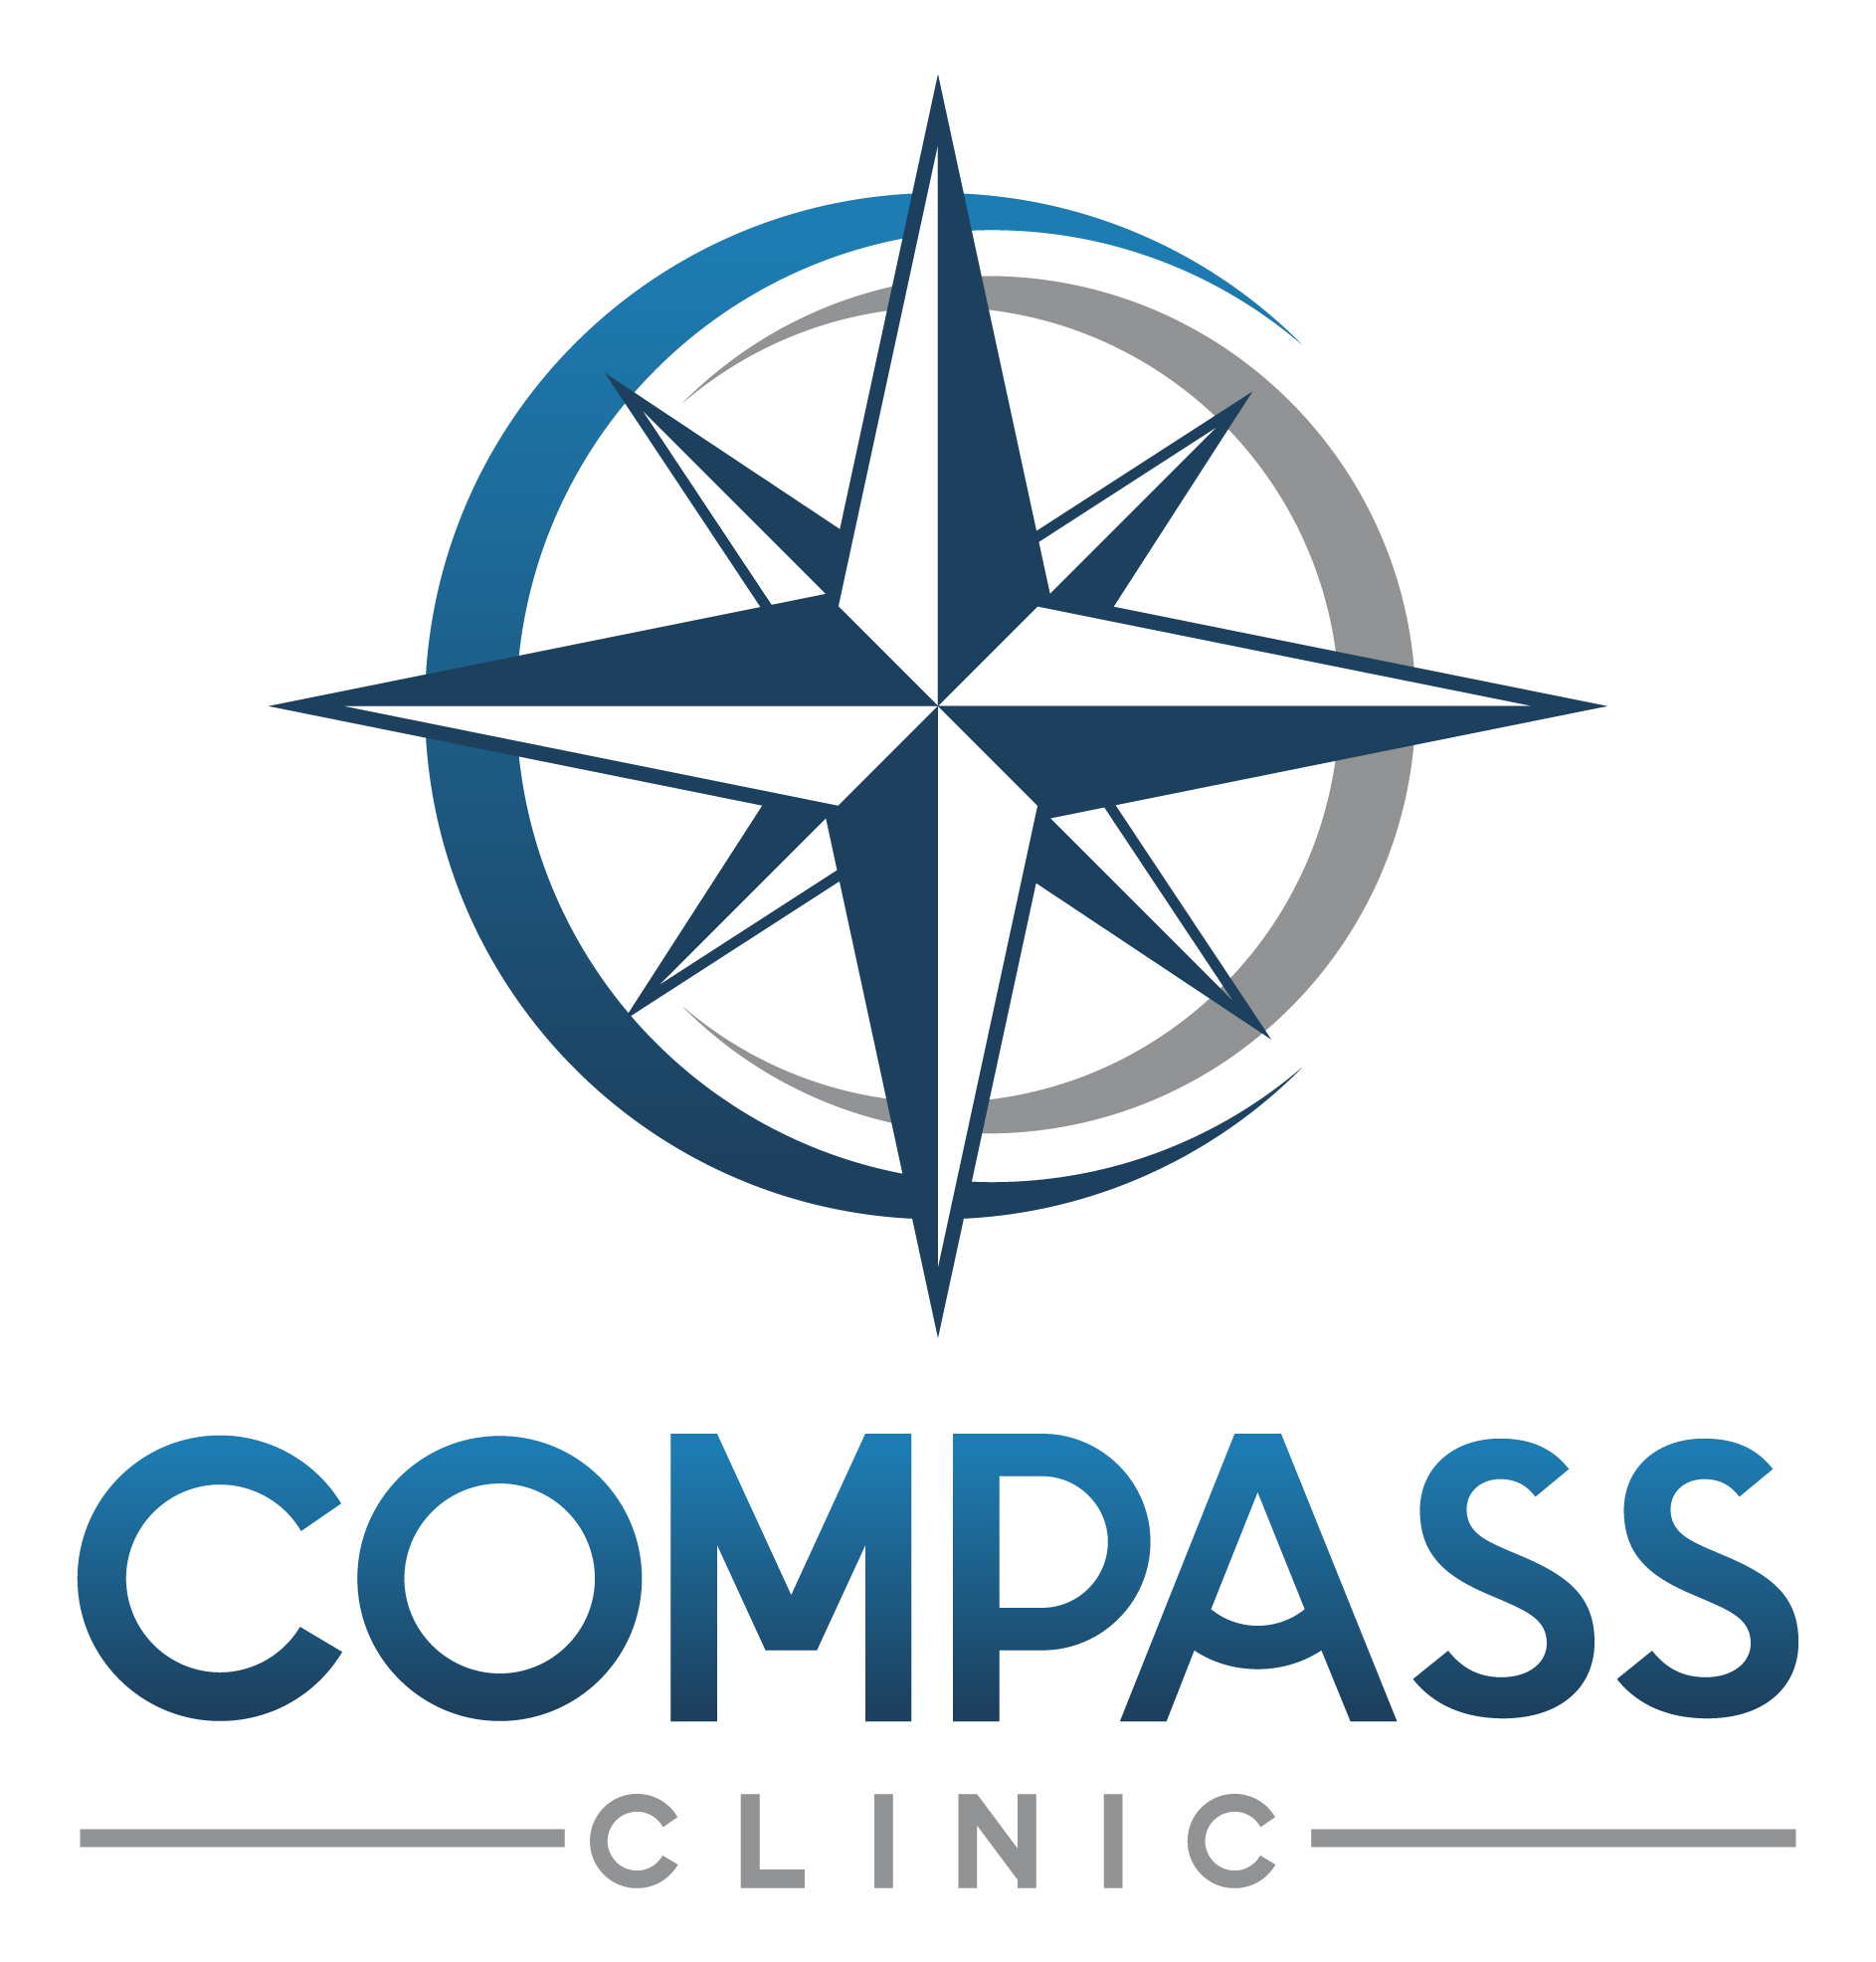 Compass Clinic